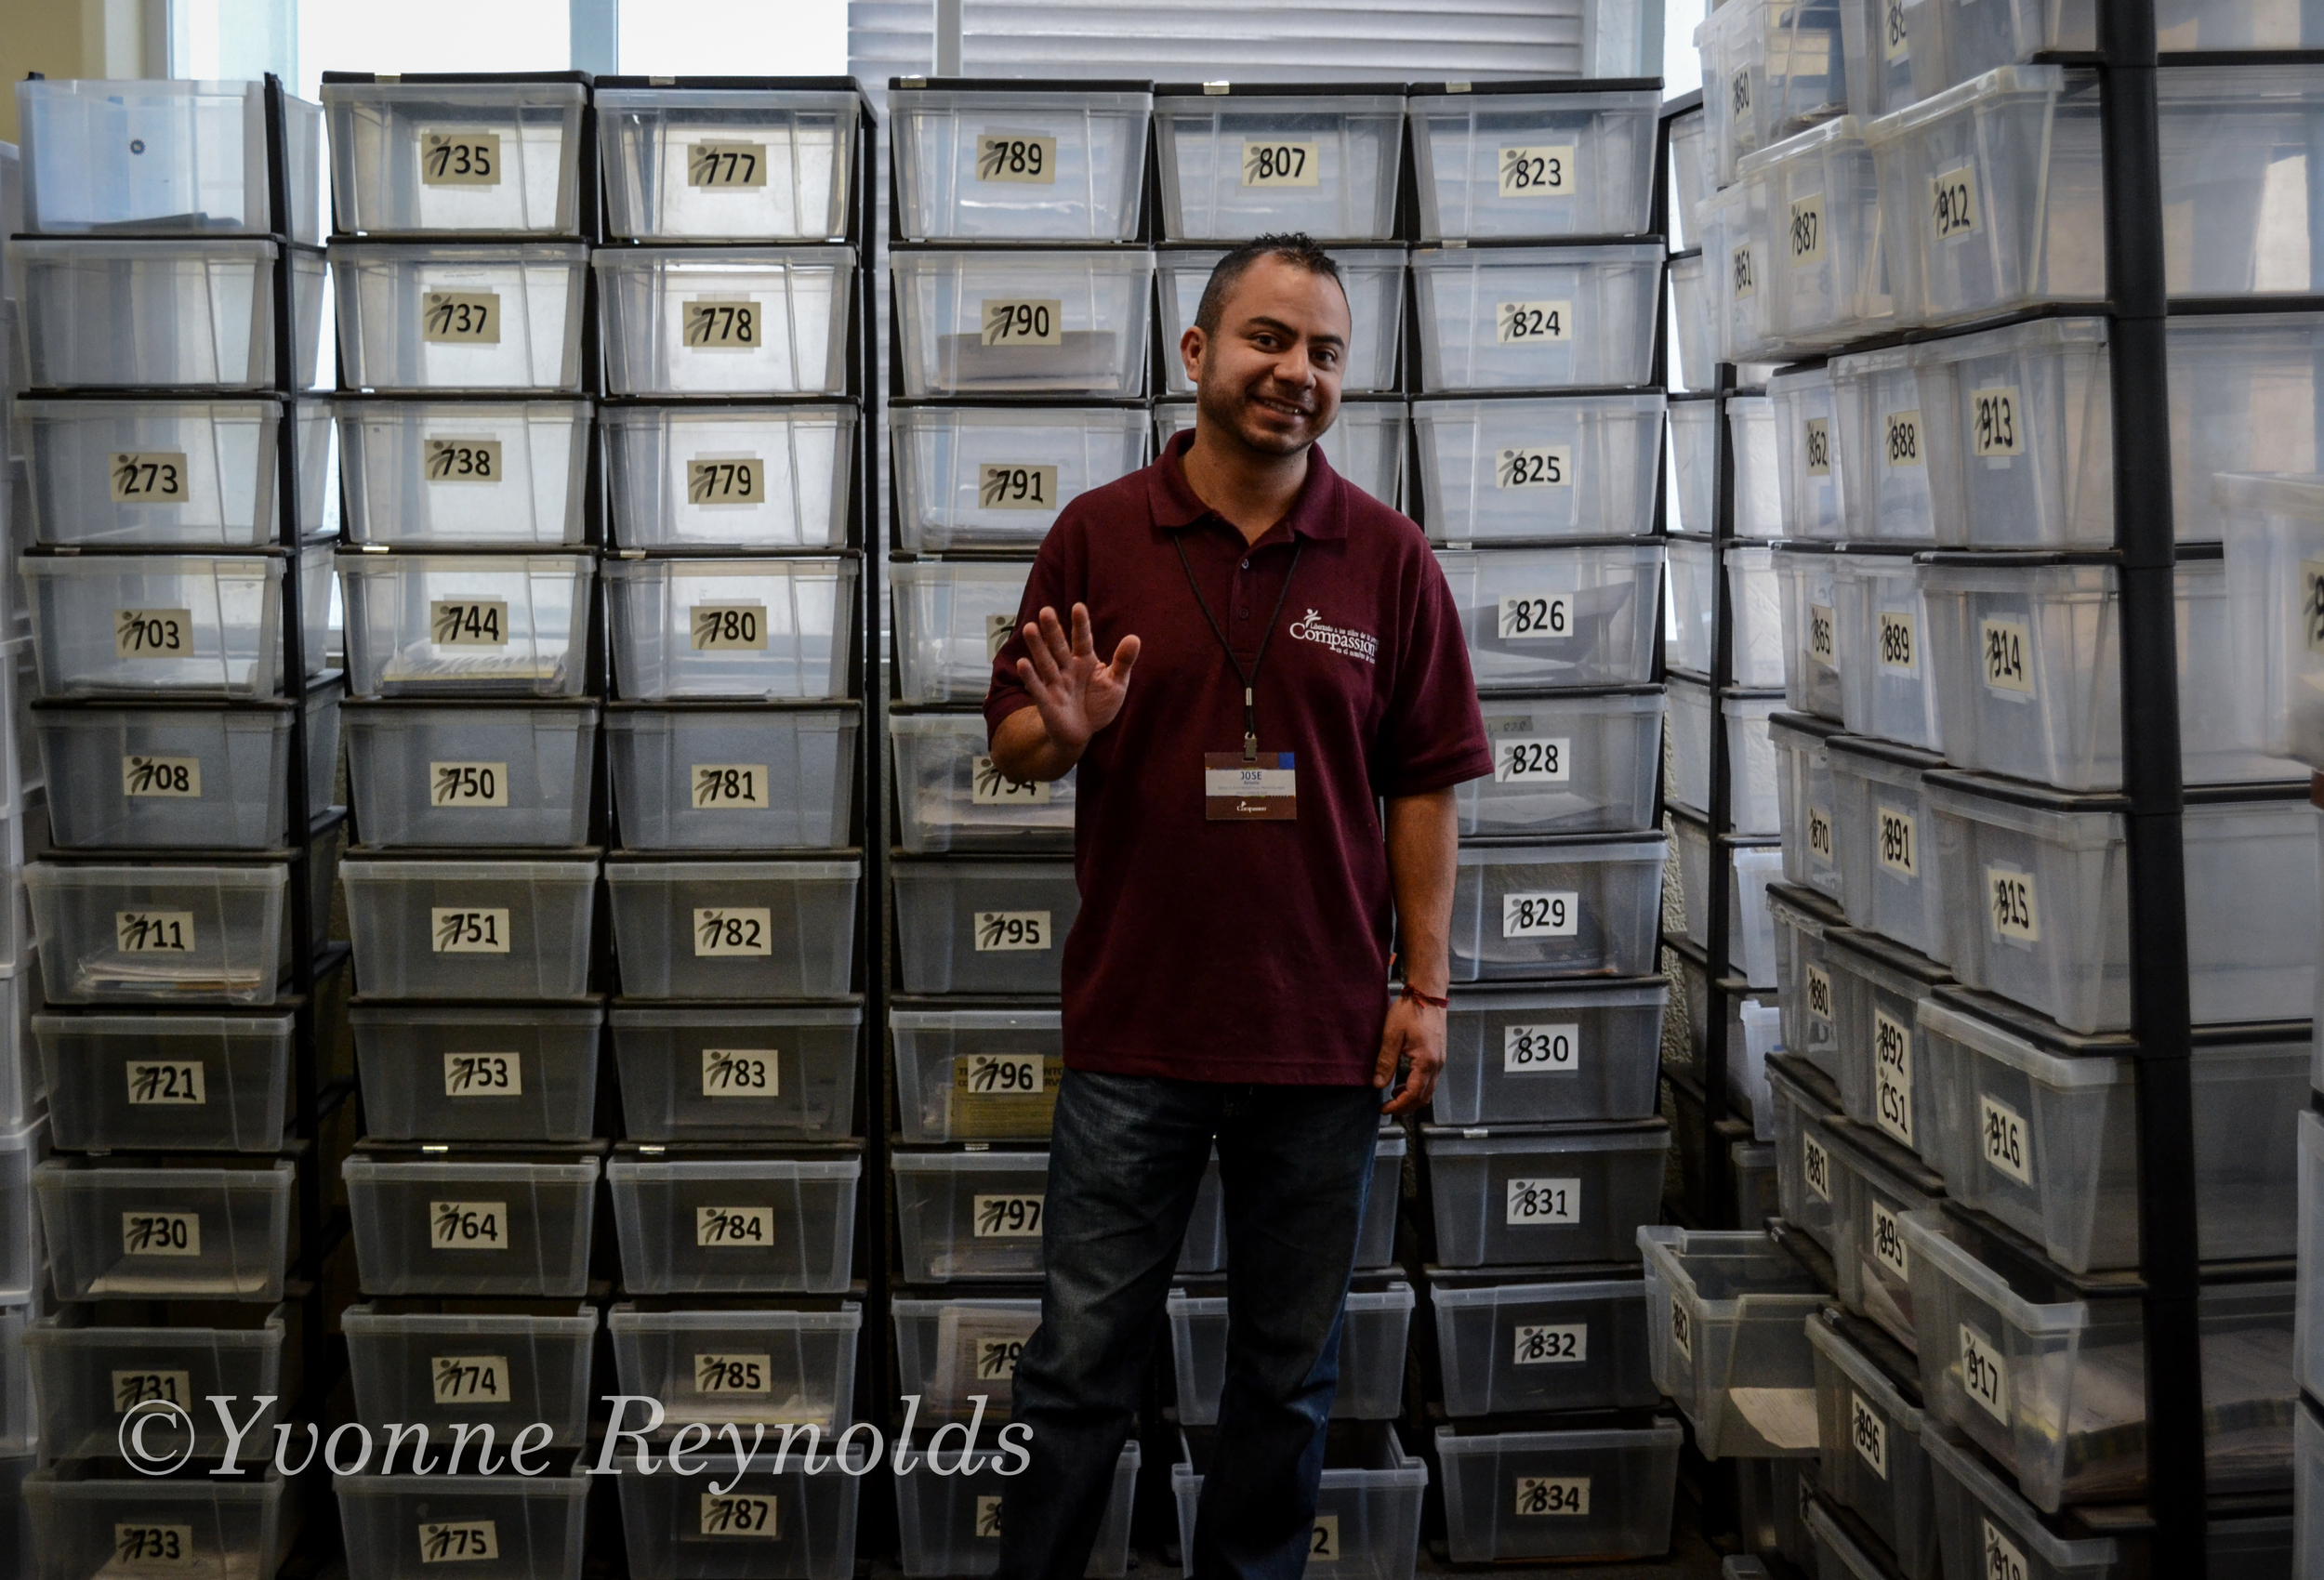 Antonio showing us the many boxes which are used to sort sponsor letters by project number.